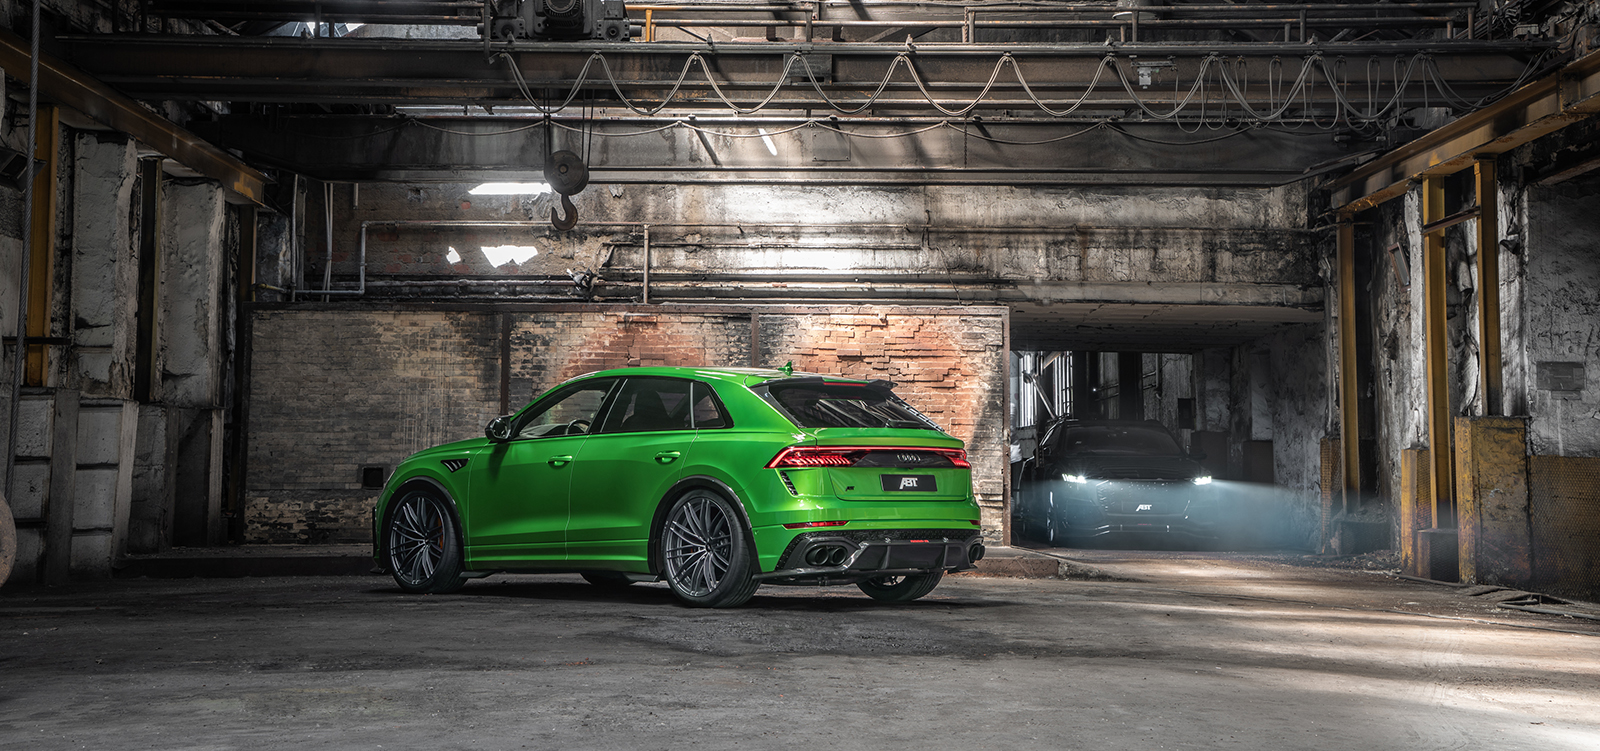 ABT_RSQ8-R_green_HR23_building_rear_diagonally